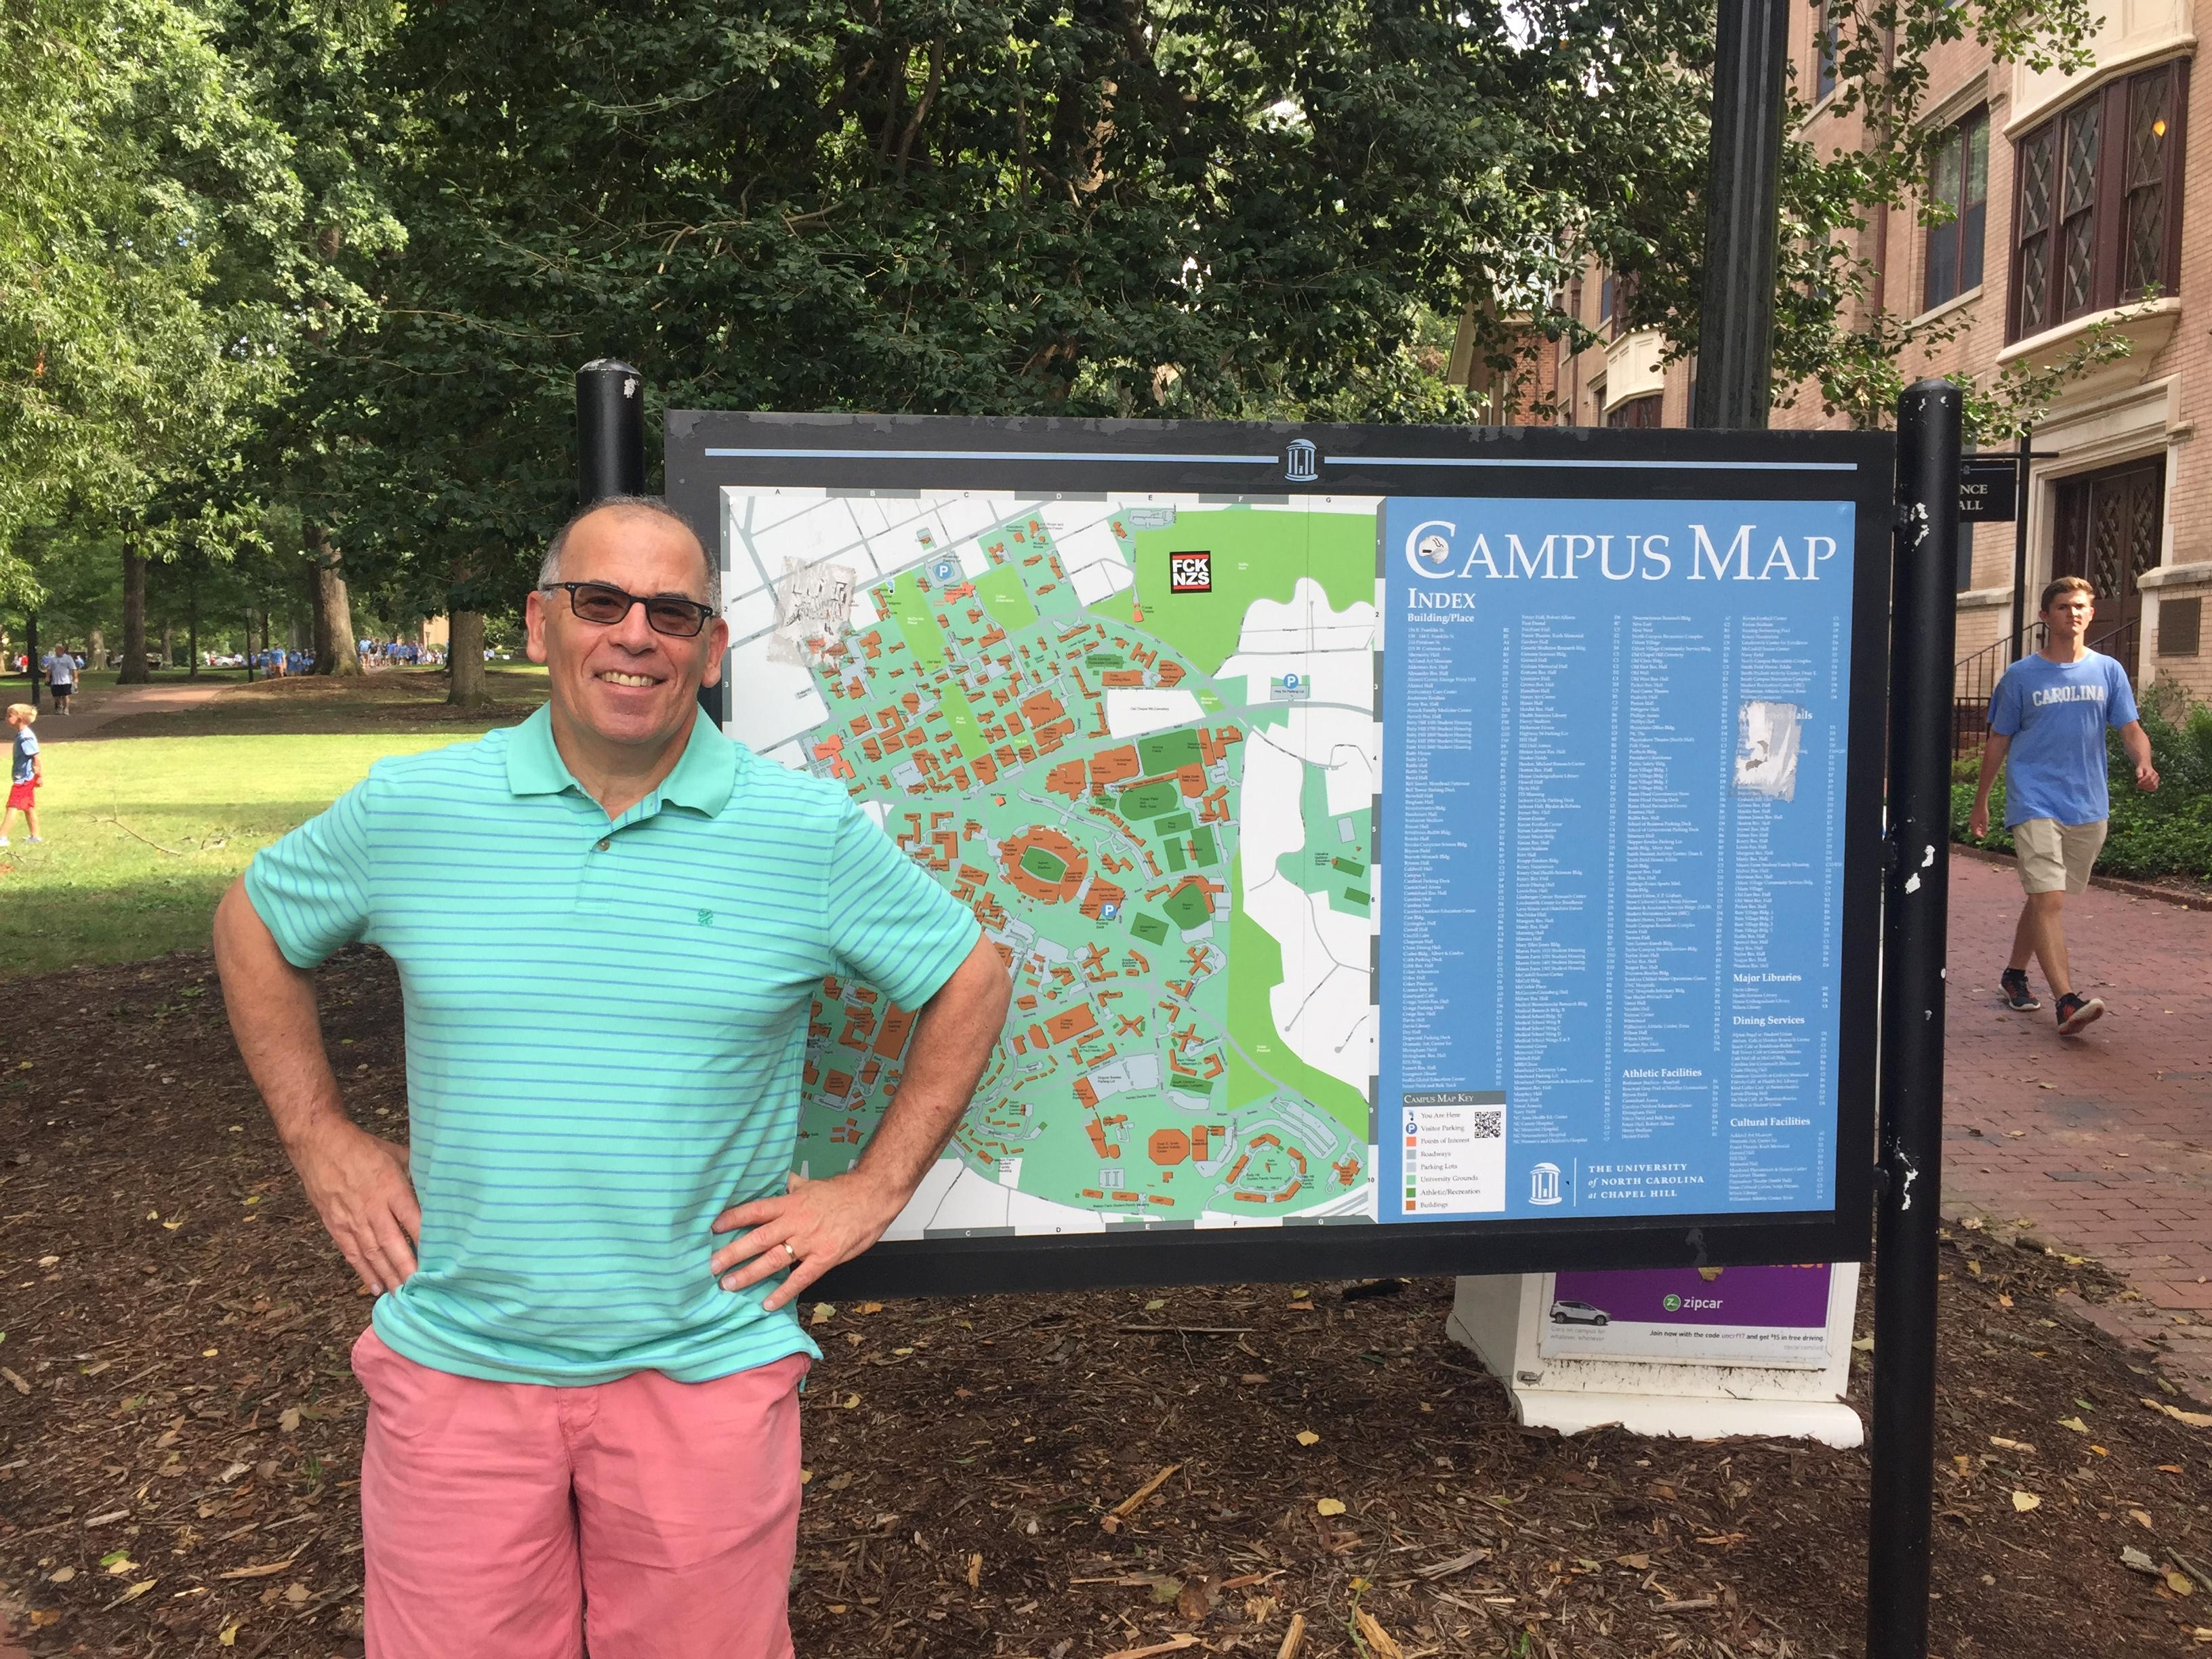 Neal in front of Campus Map